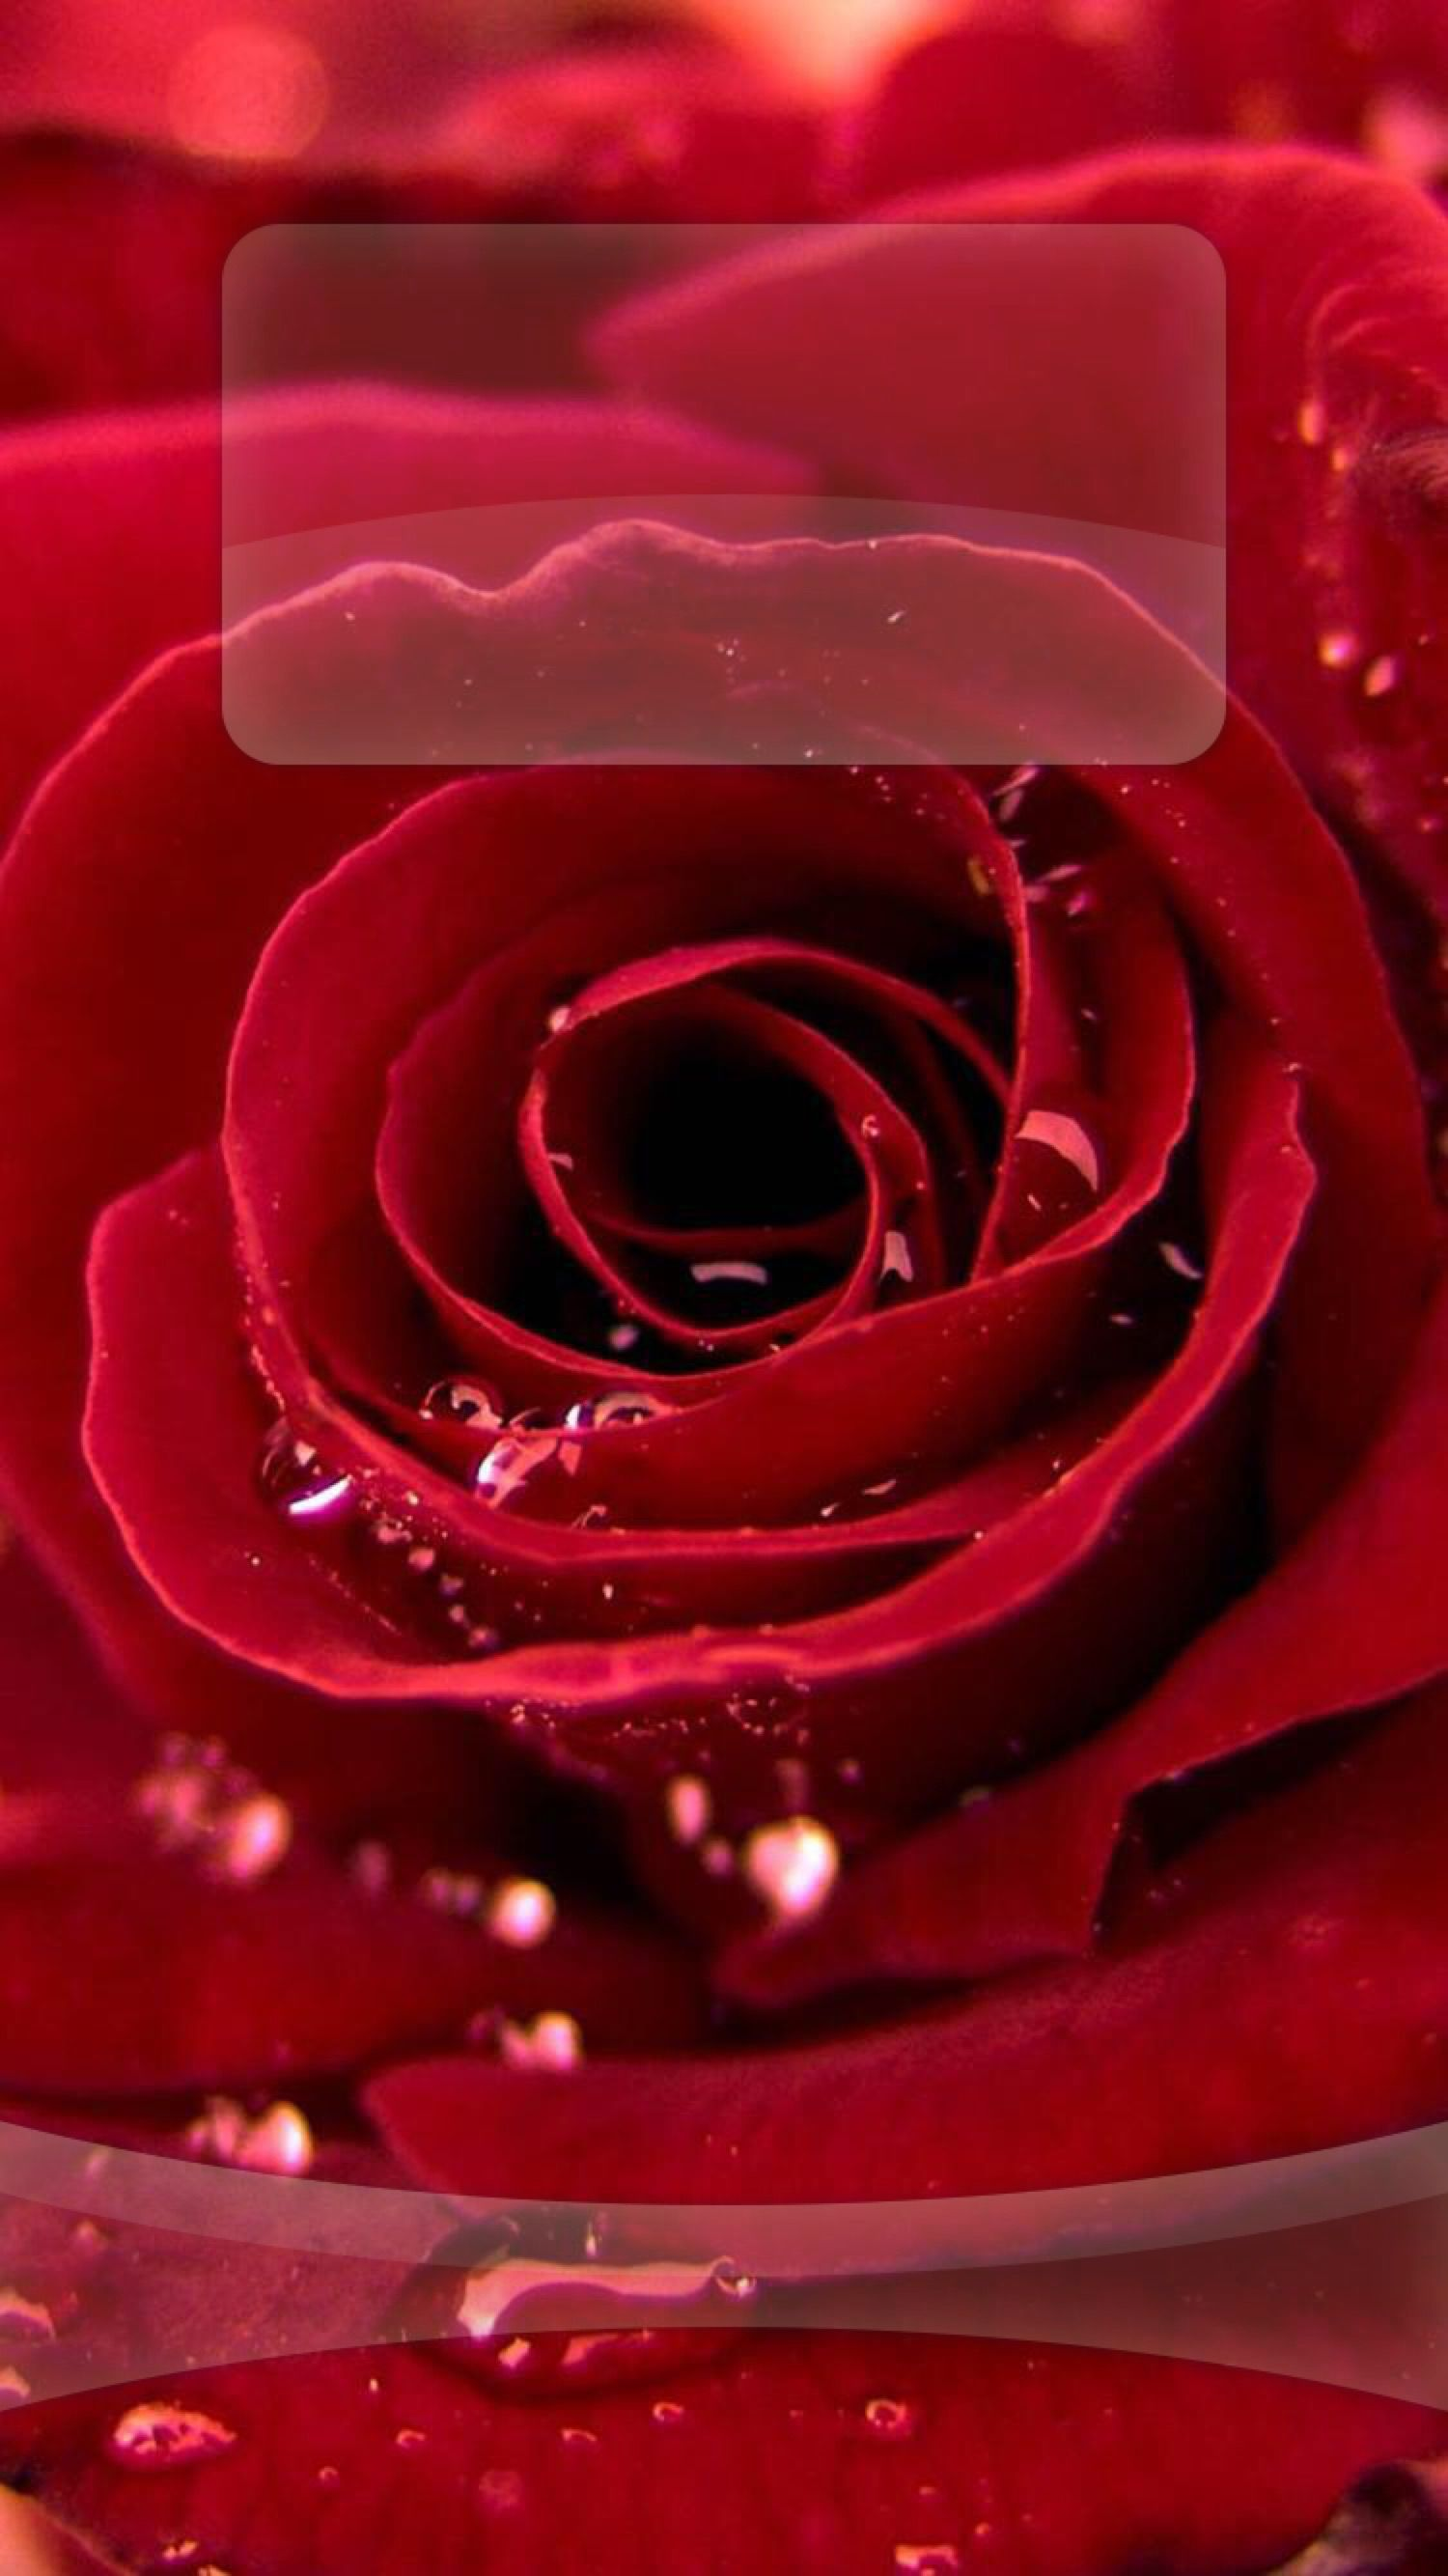 Tap And Get The Free App Lockscreens Art Creative Rose Drops Water Red Flower Hd Iphone 6 Lock Screen With Images Single Red Rose Wallpaper